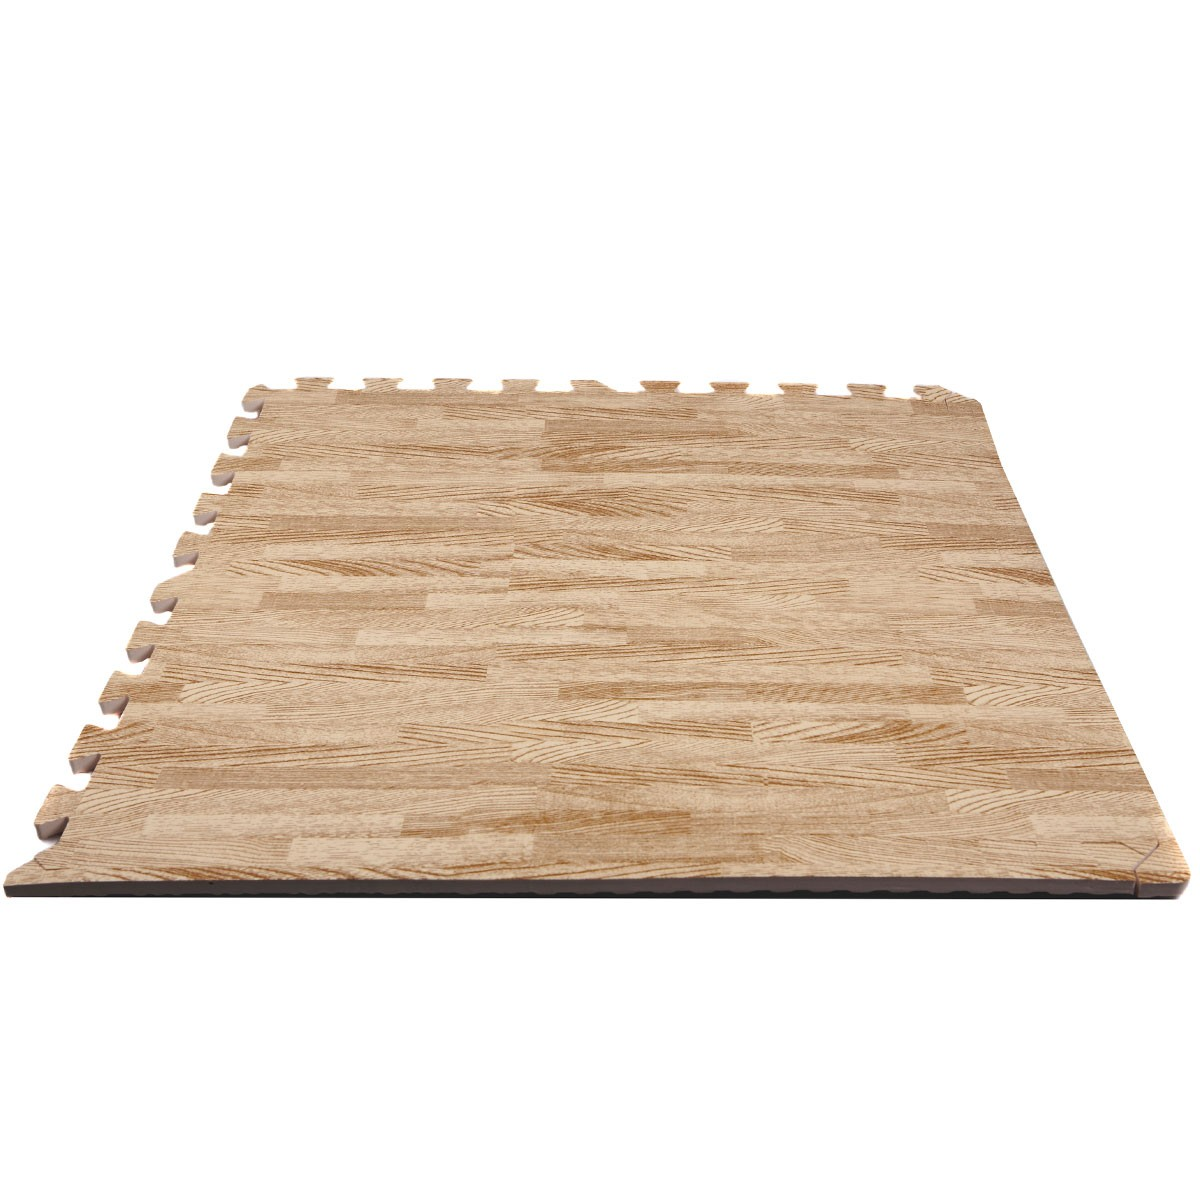 Buy FINNLO by HAMMER floor mat with wood look puzzle mat